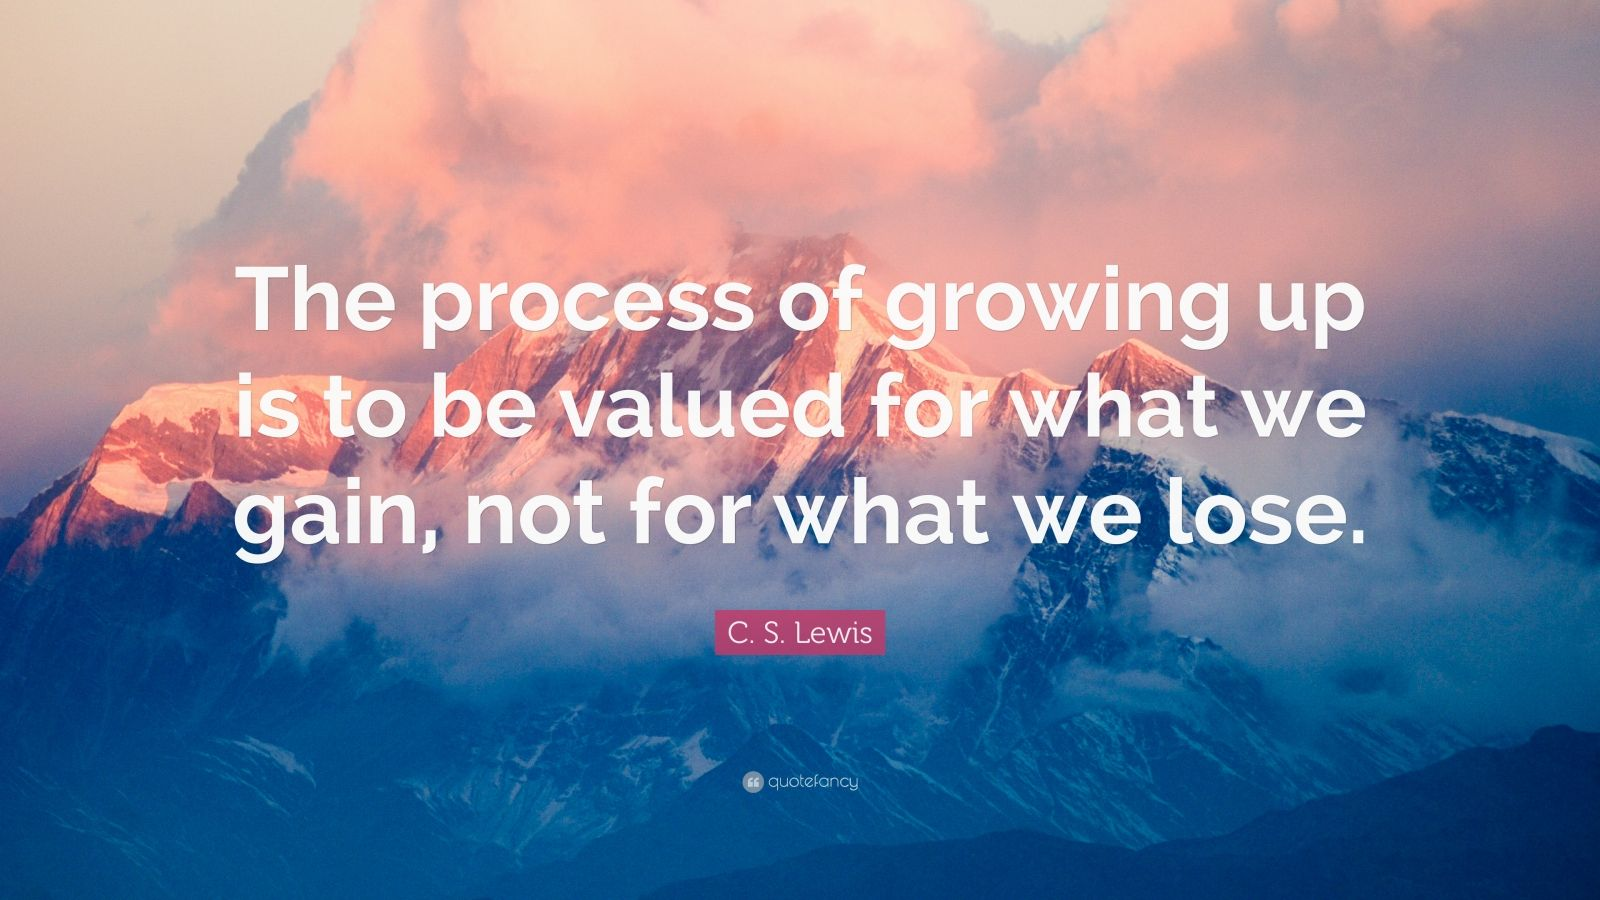 """C. S. Lewis Quote: """"The process of growing up is to be valued for what we gain, not for what we lose."""""""